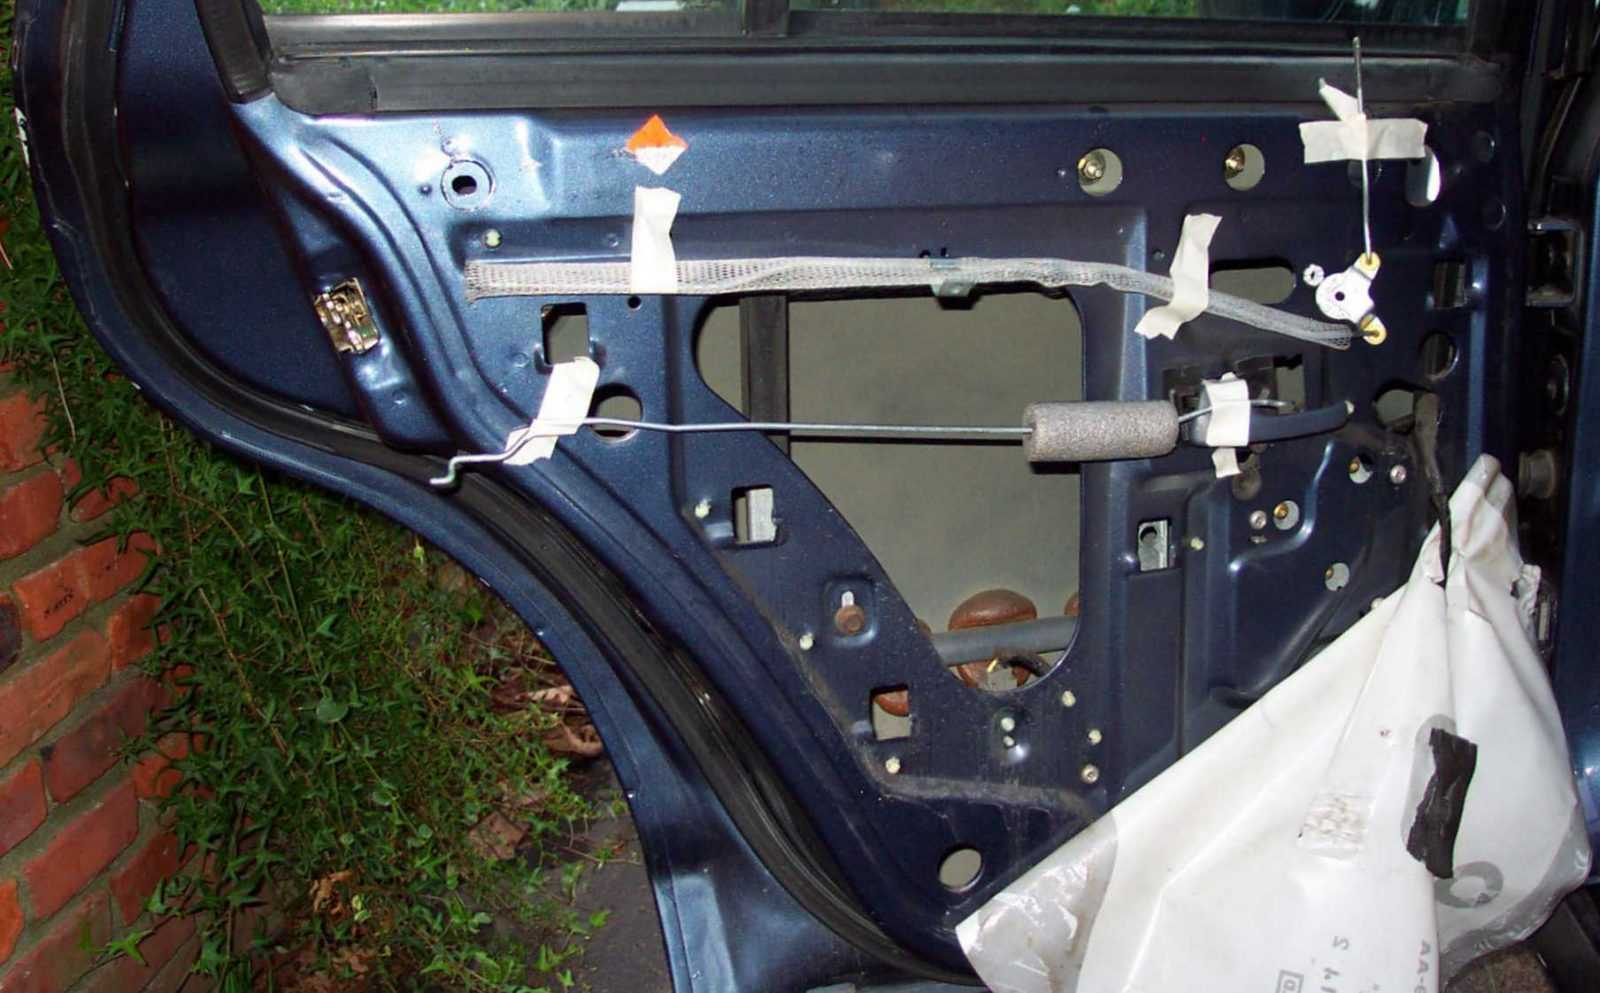 A manual on how to fix a car door handle can also help lessen the work